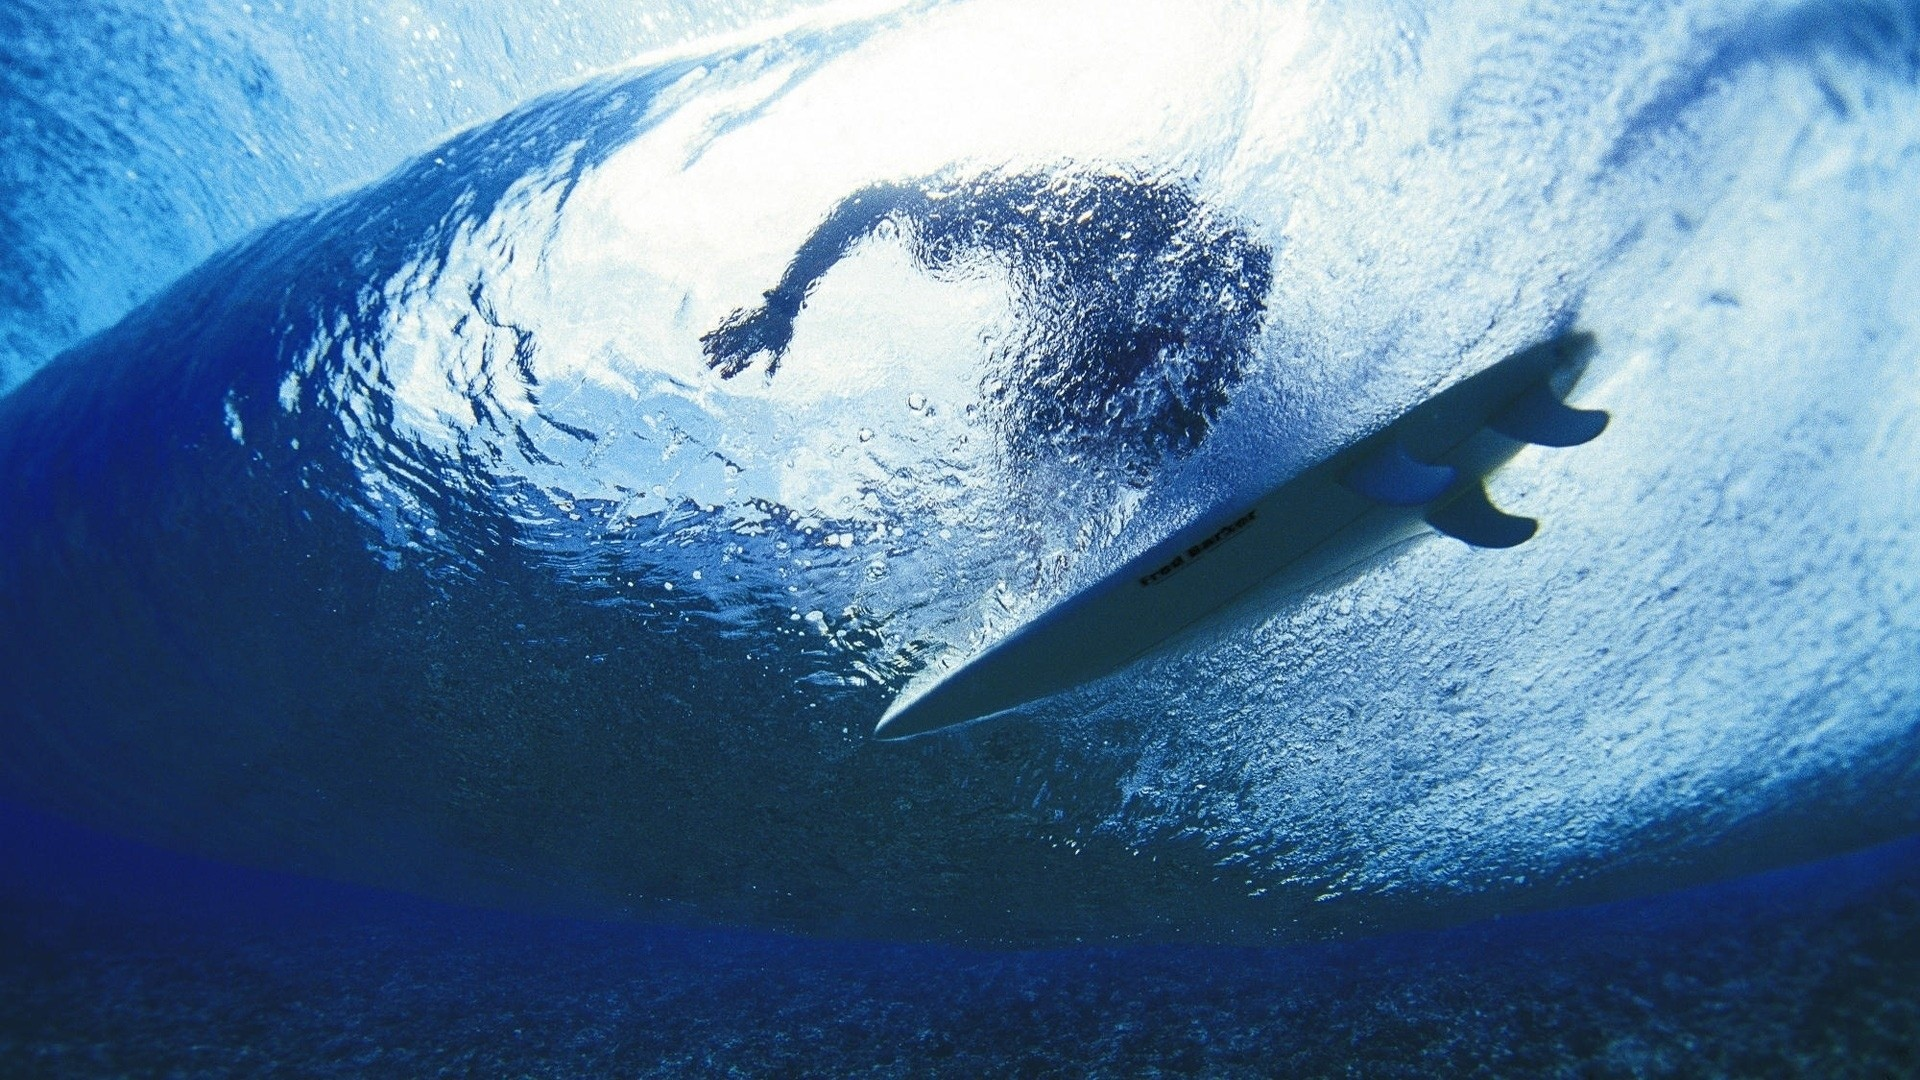 1920x1080 Preview wallpaper surfing, surfer, water, depth